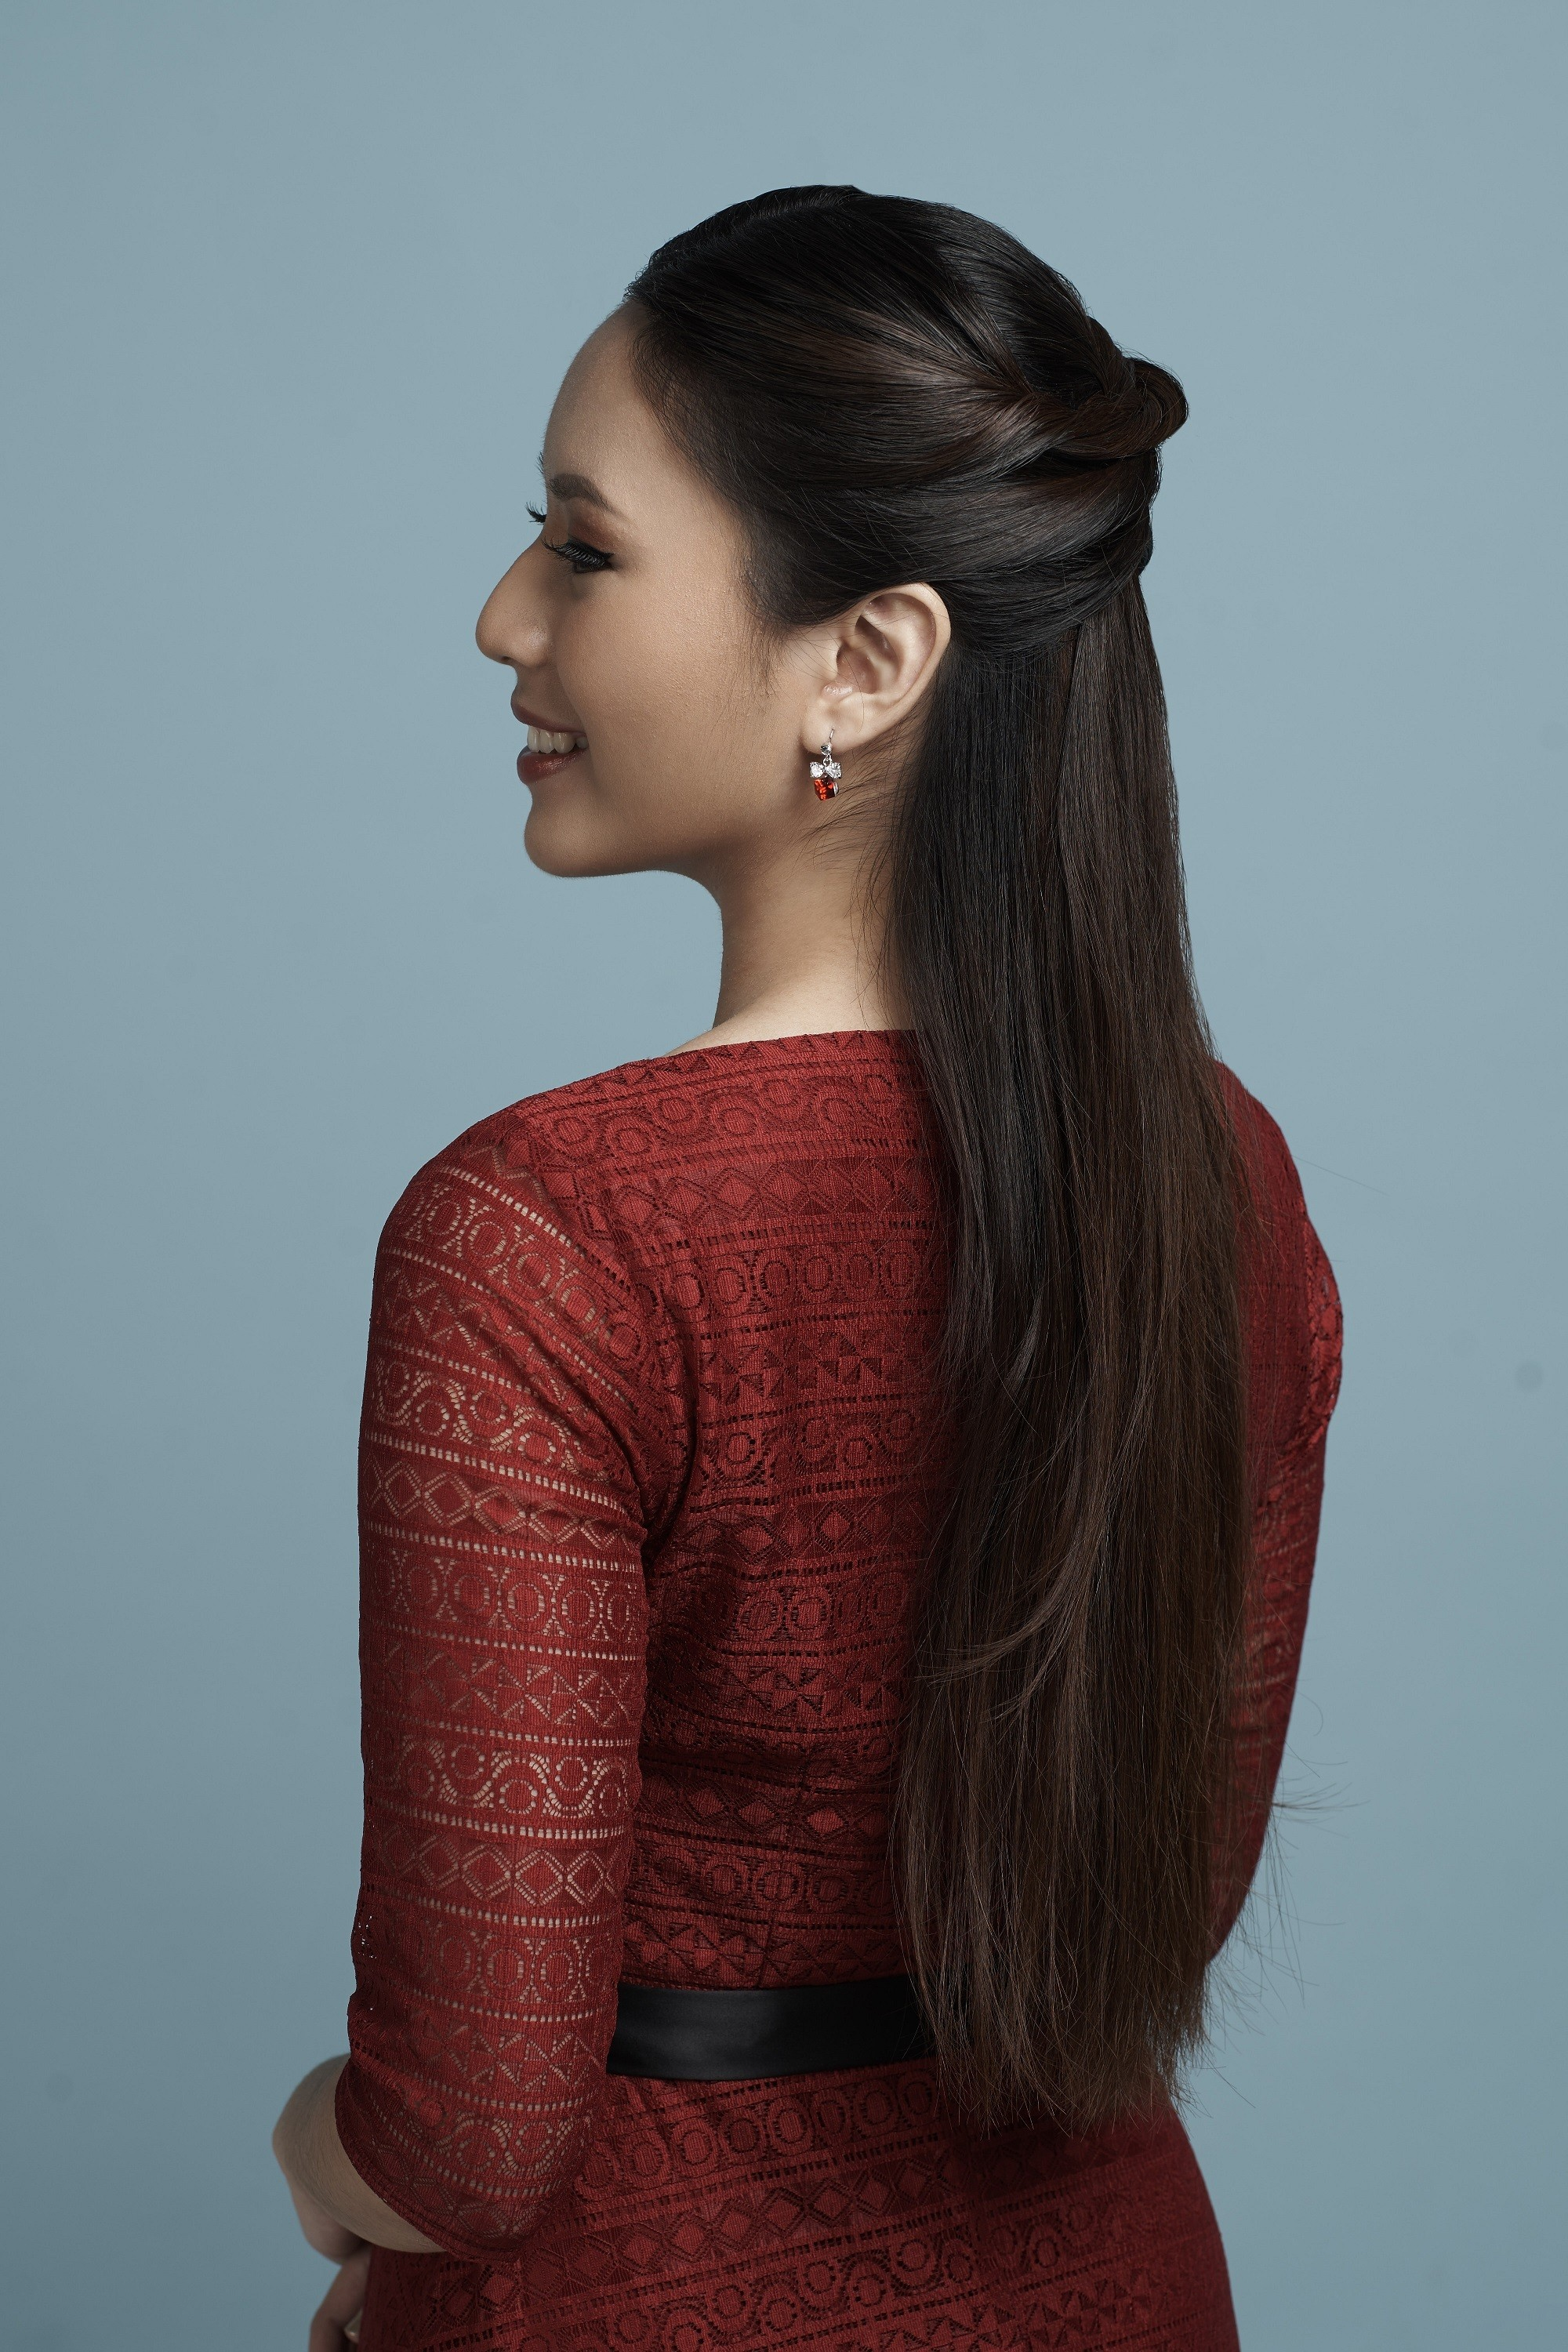 Valentine hairstyles: Back shot of an Asian woman with long black hair in half up hairstyle and wearing a red dress